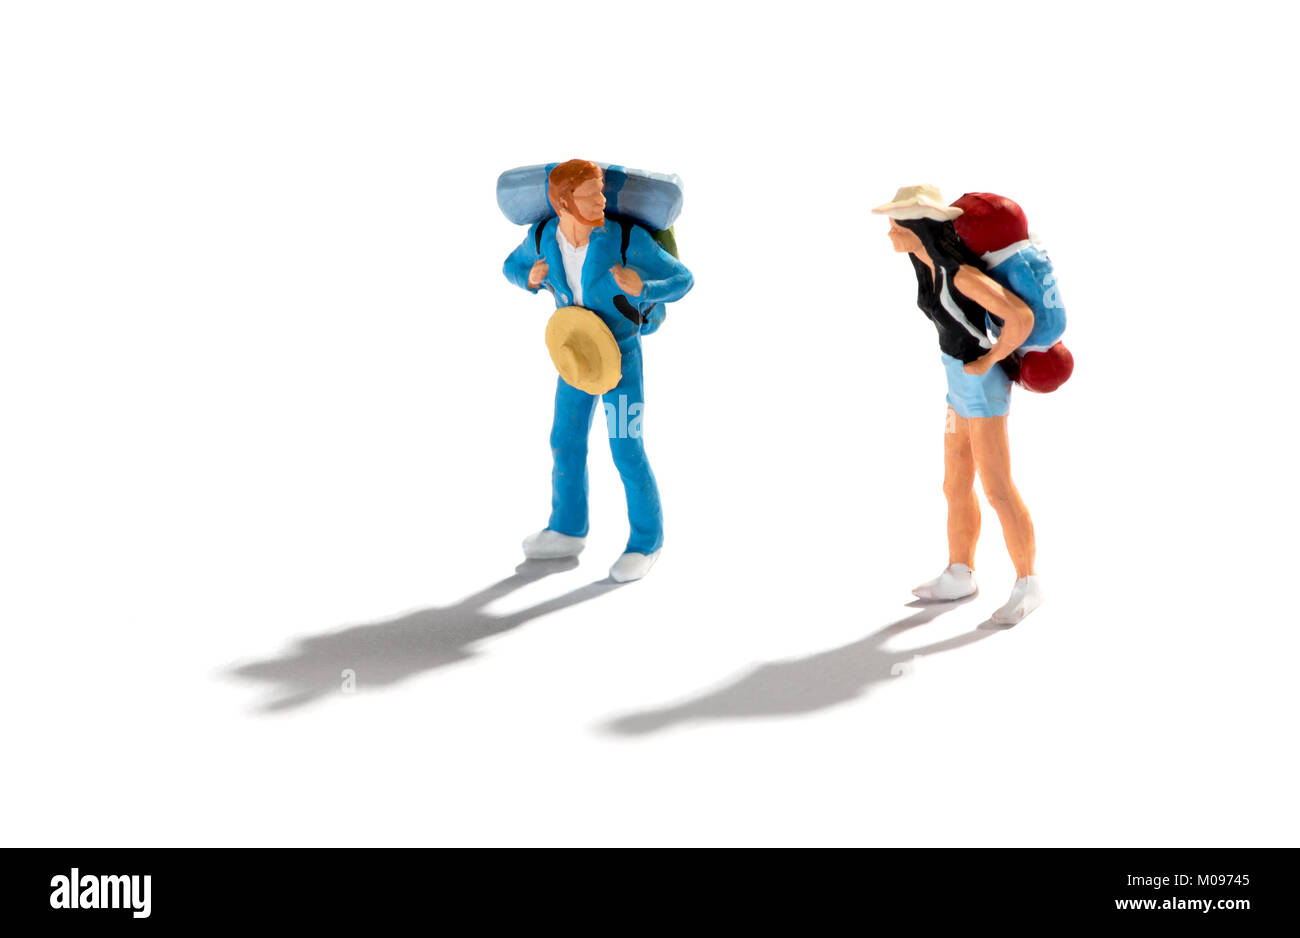 Miniature figures of two travellers or backpackers on a white background with shadows standing looking at each other - Stock Image